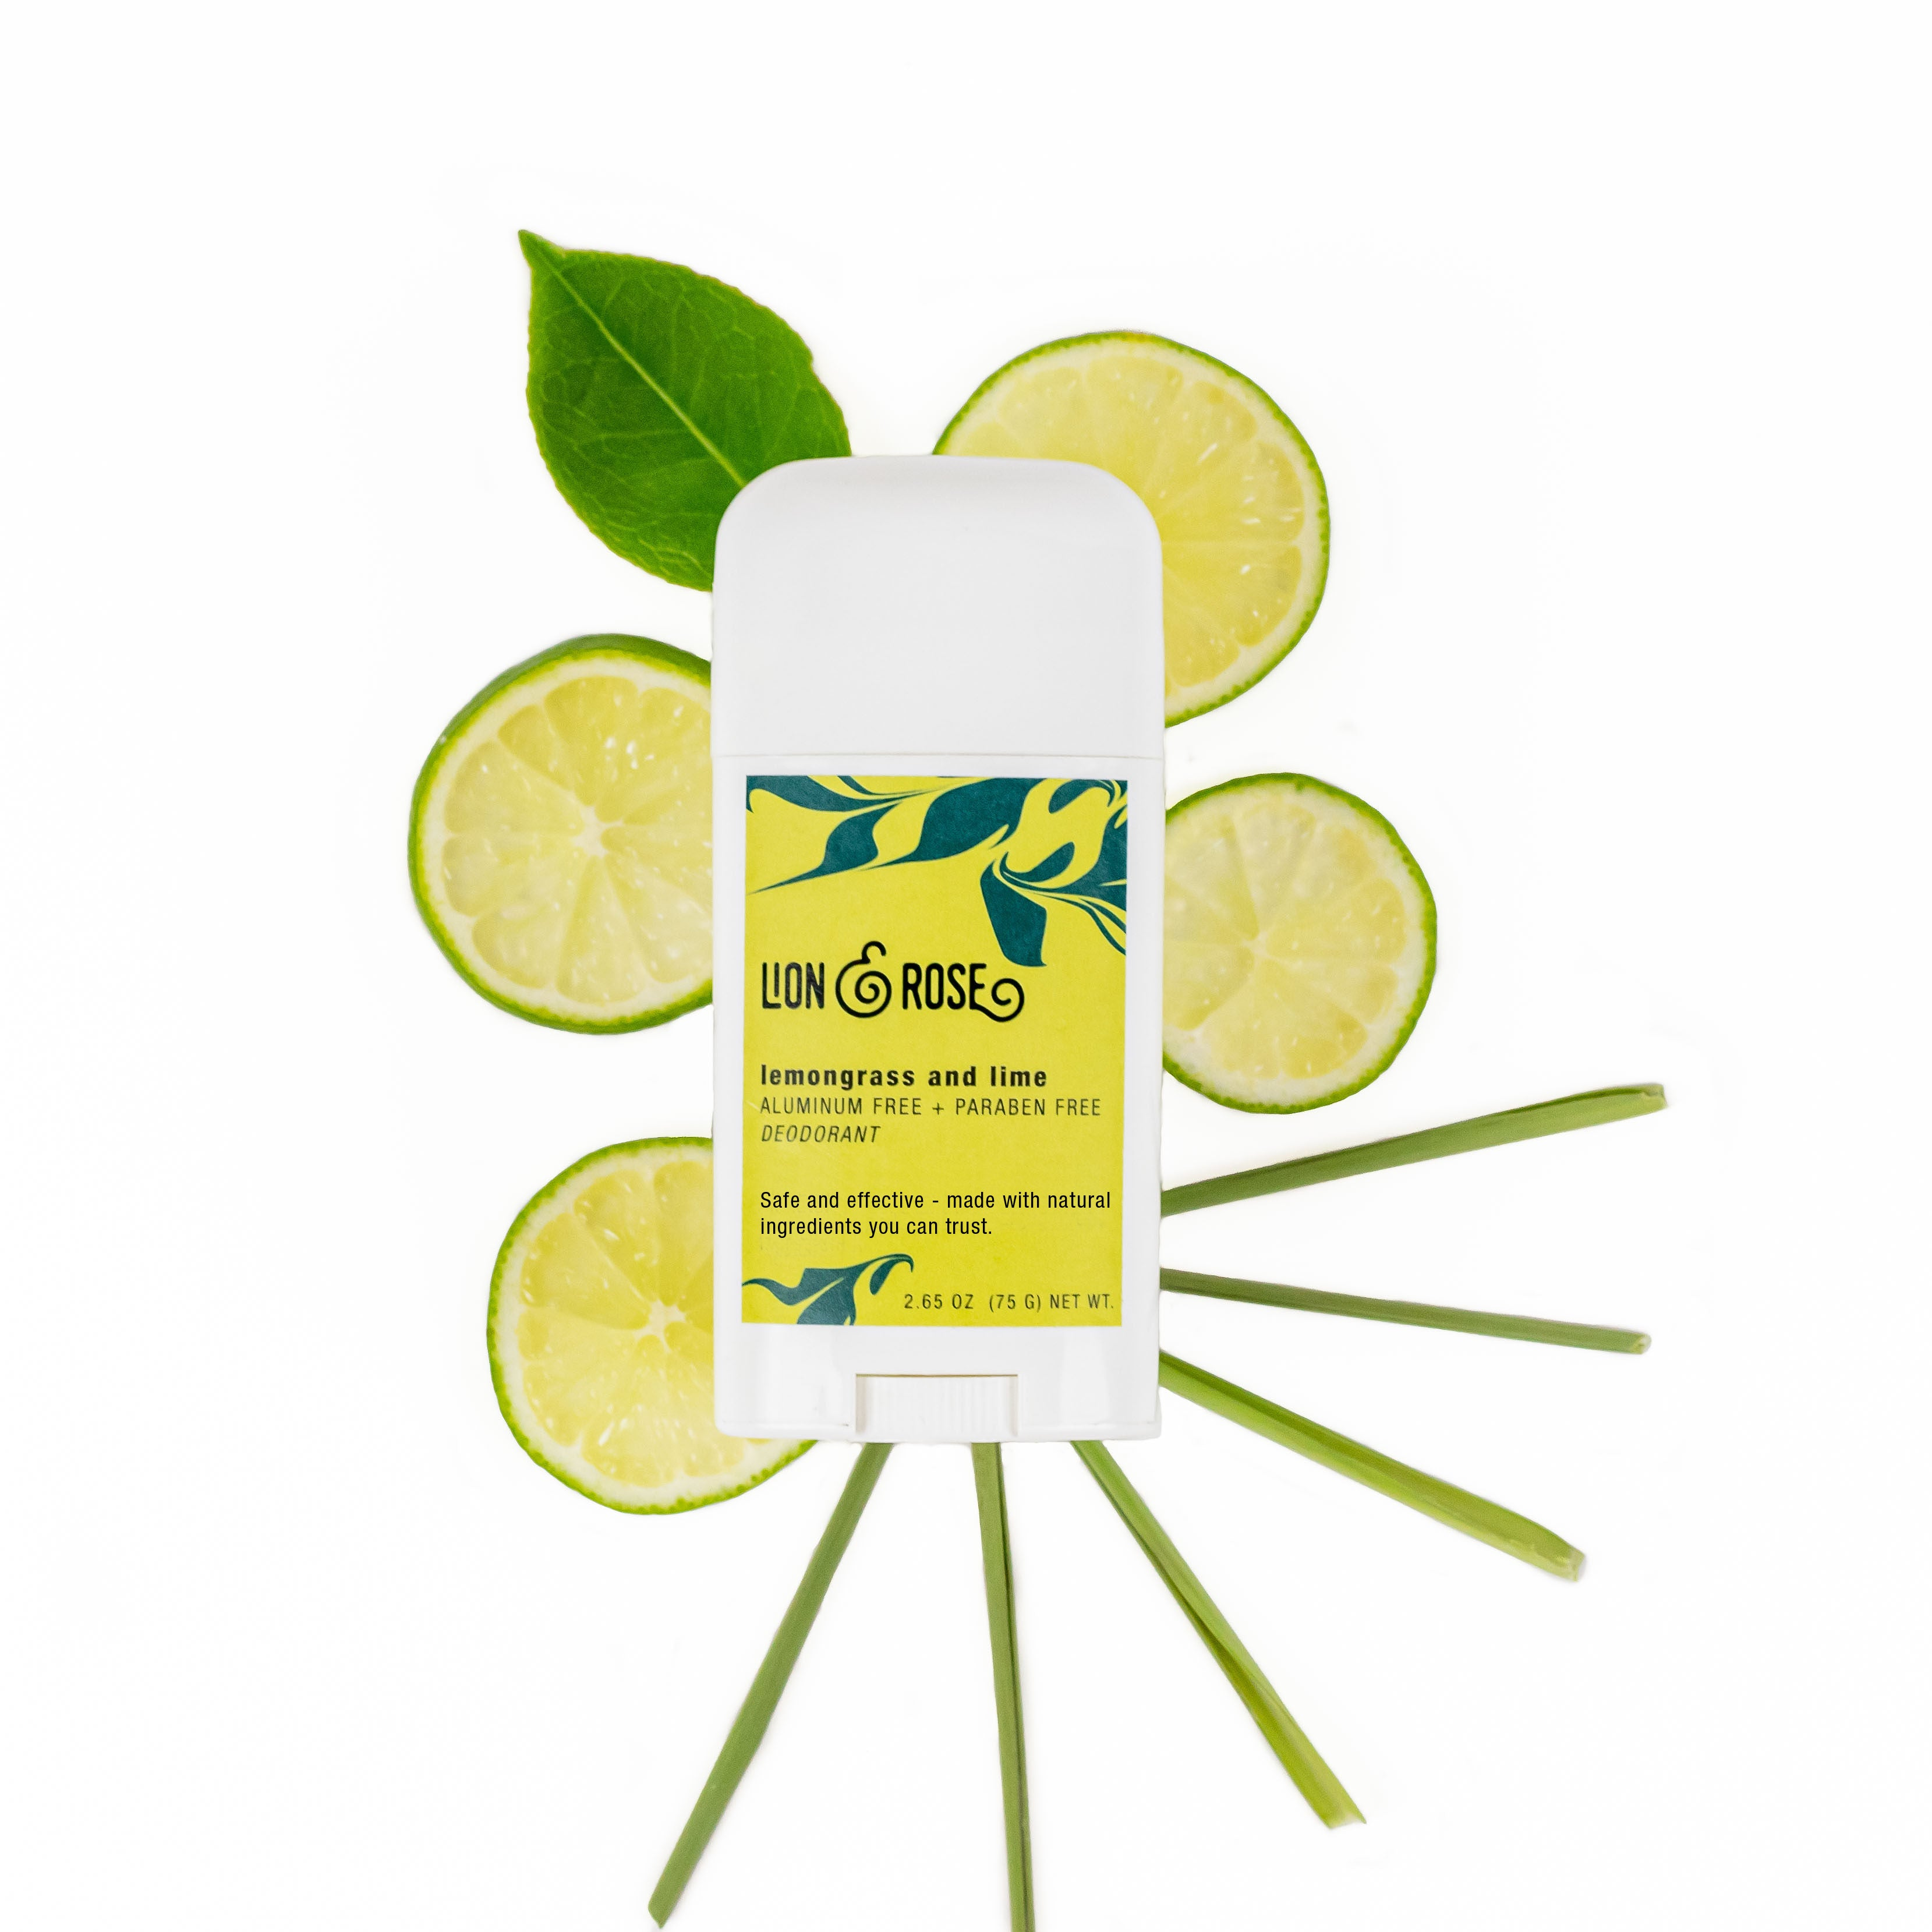 Non-toxic deodorant made with lemongrass and lime